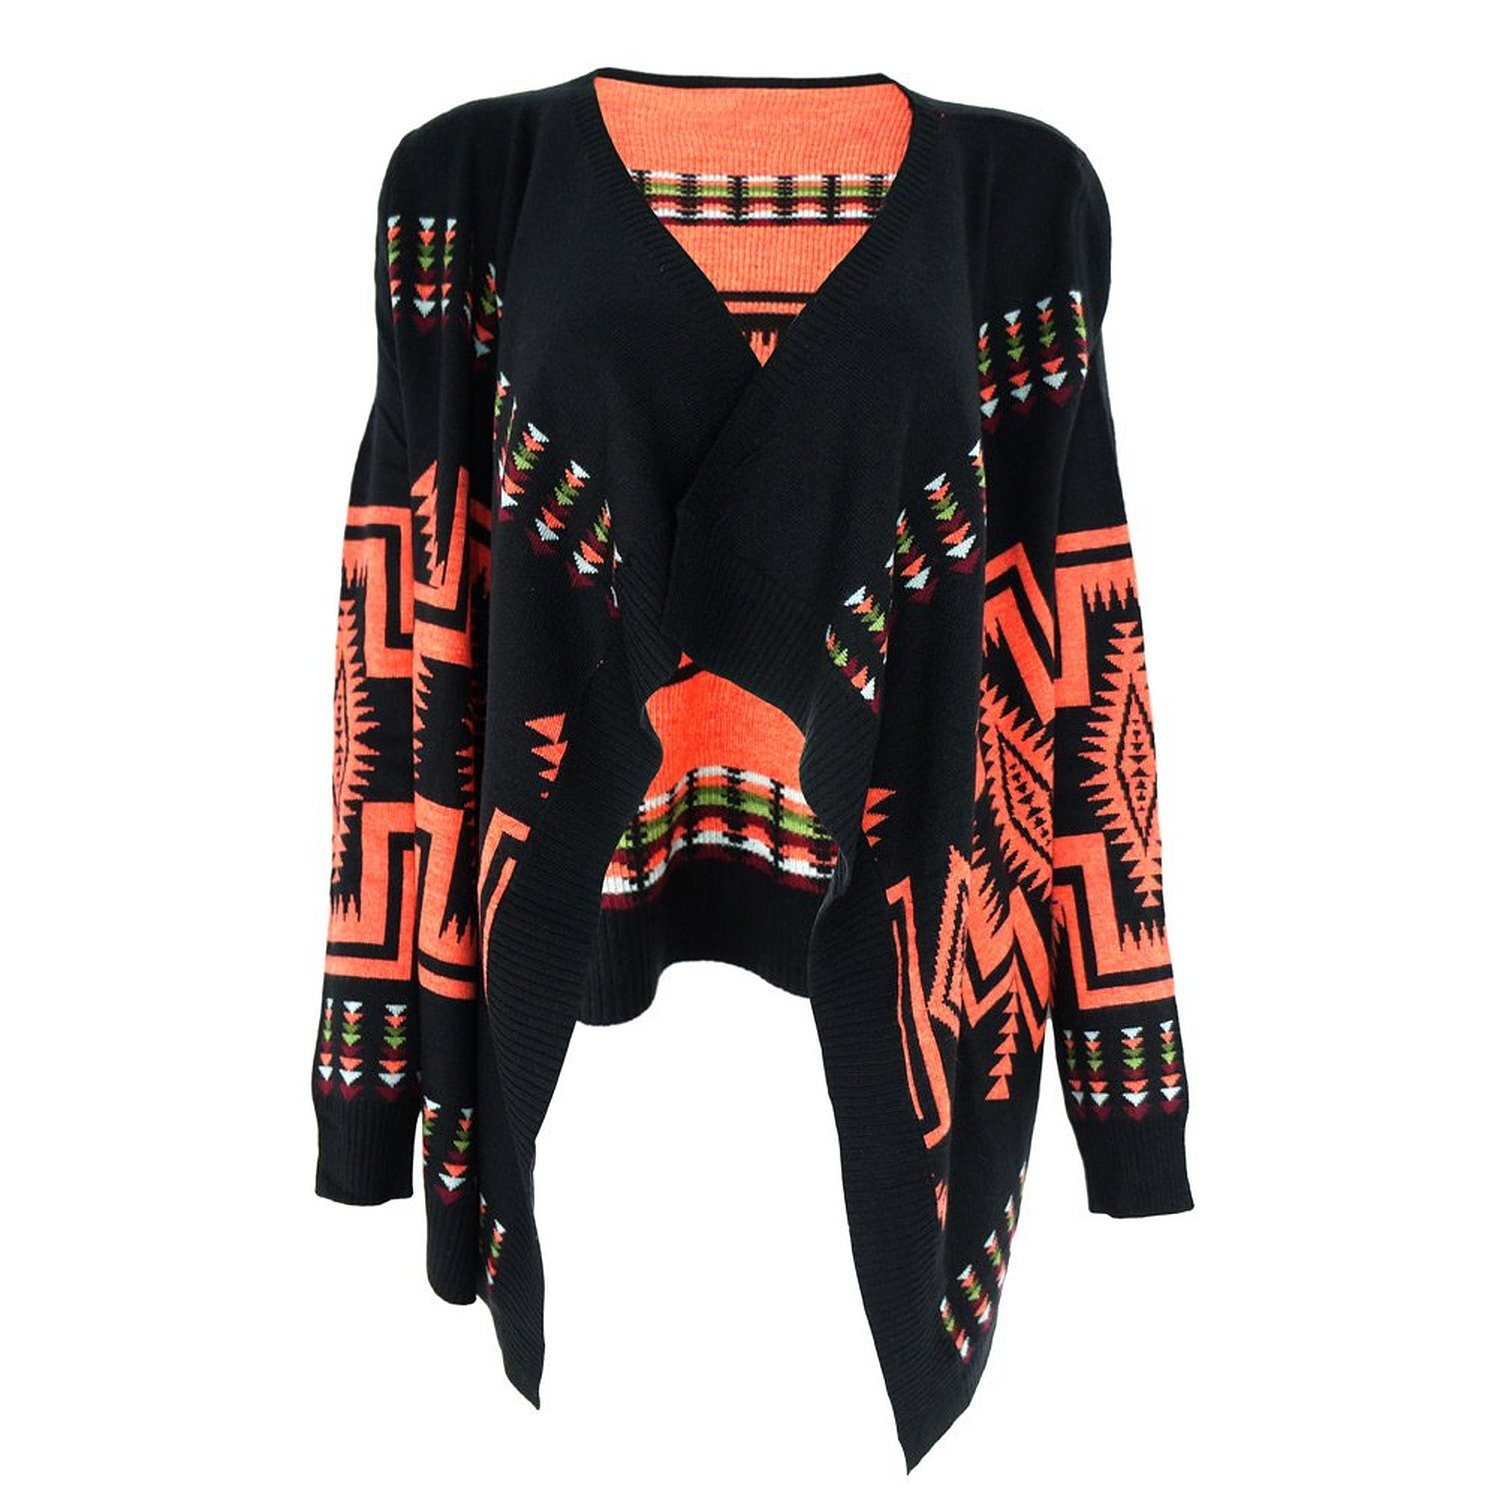 ZLYC Women's Tribal Aztec Blanket Wrap Cardigan with Waterfall Open Front at Amazon Women's Clothing store: Cardigan Sweaters